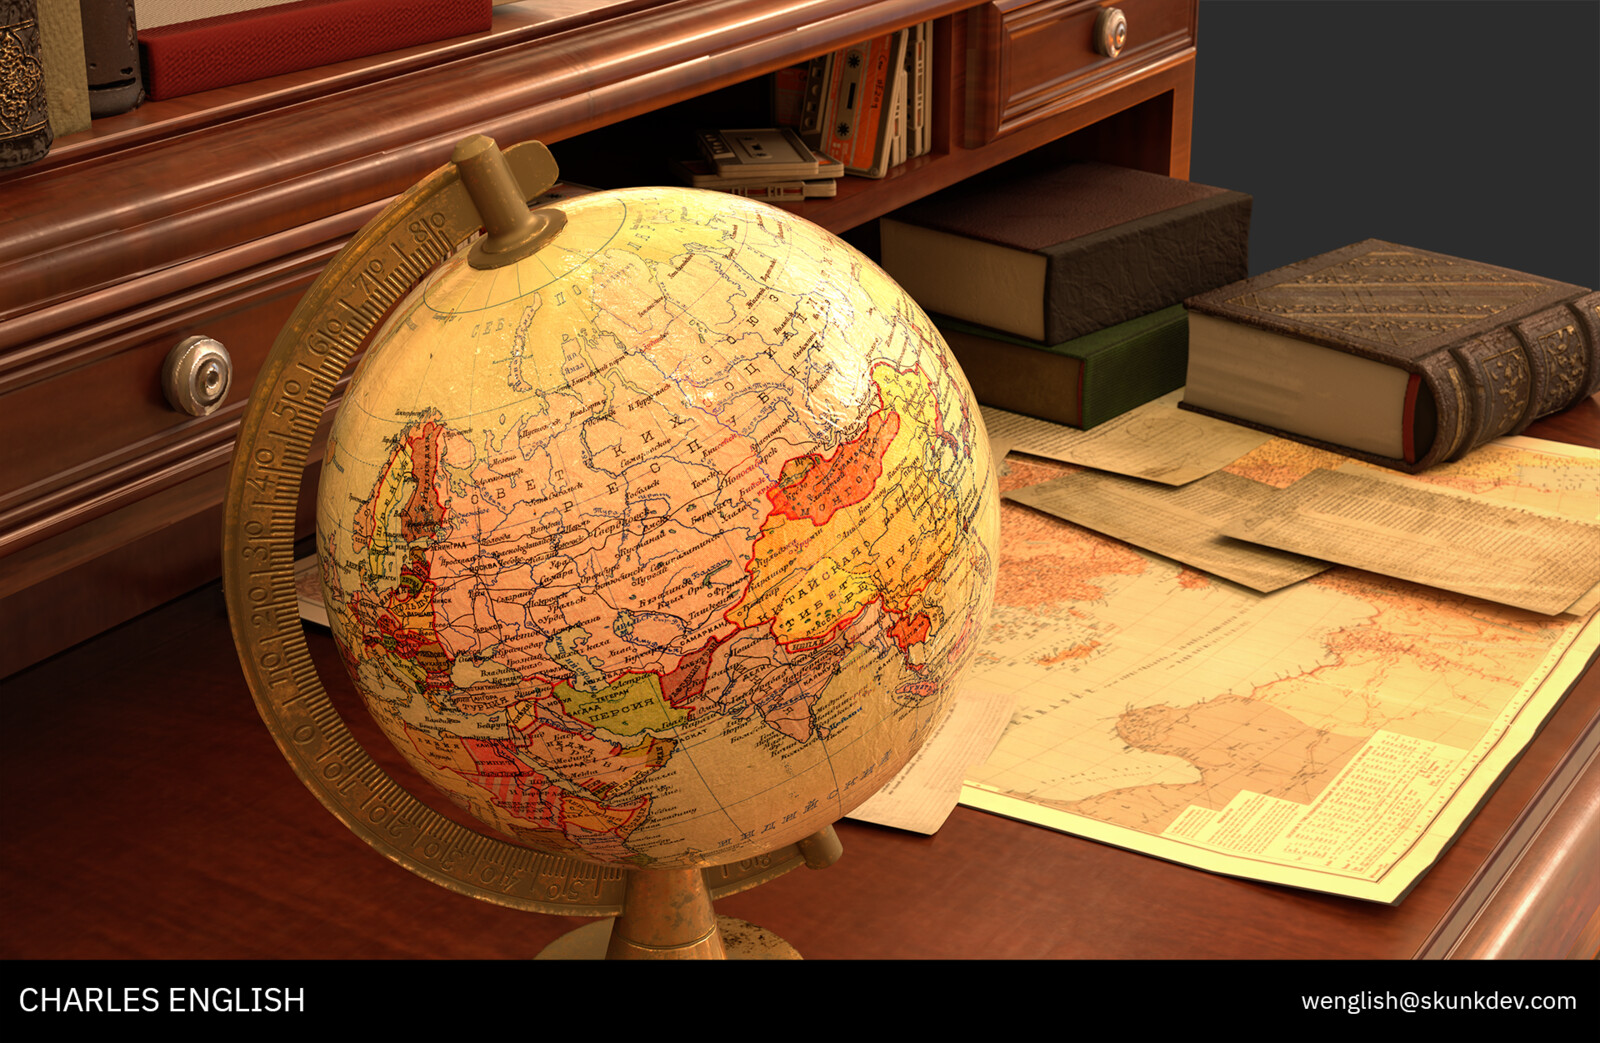 Sylvius Reko's Desk with paperwork and Soviet era globe